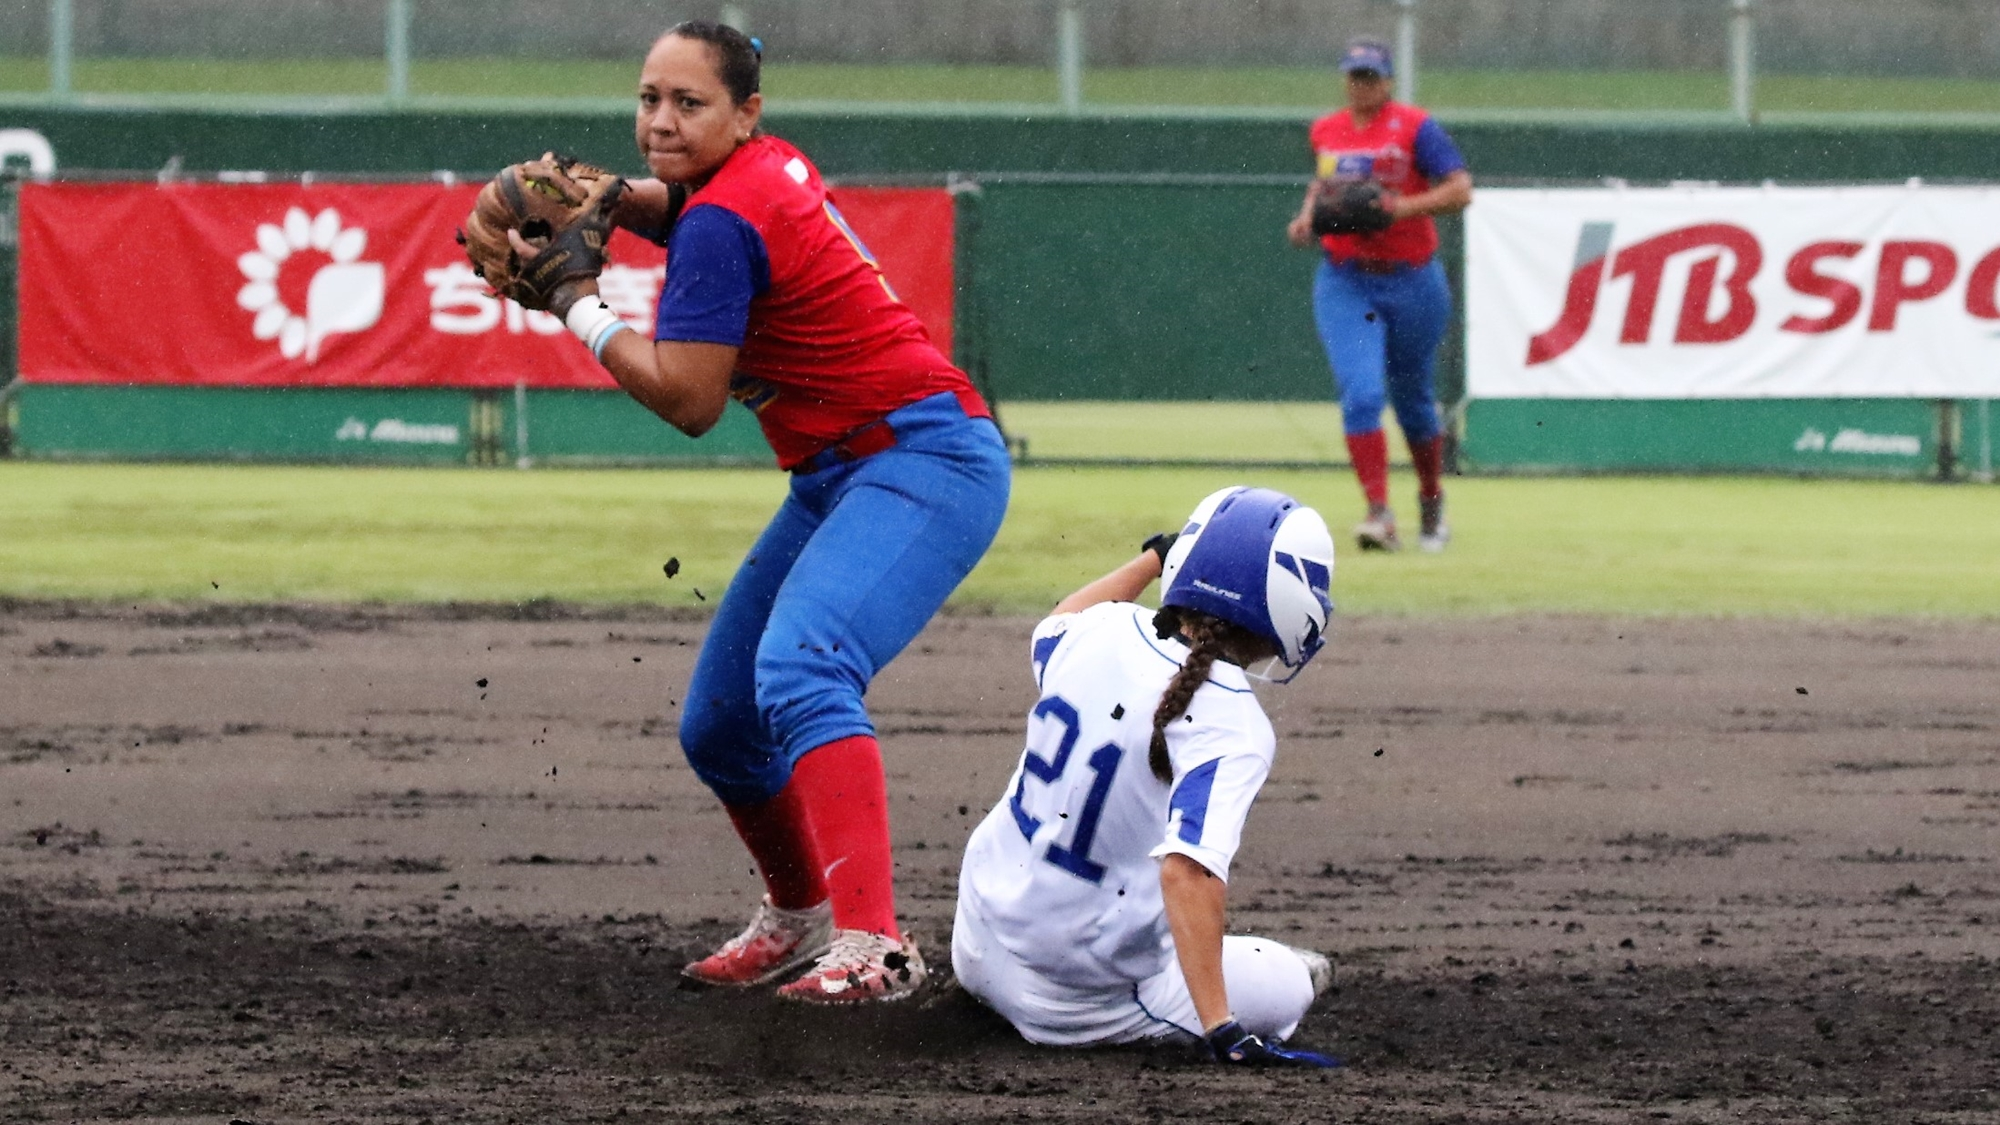 Denisse Fuenmayor of Venezuela turns a double play over Laura Vigna of Italy